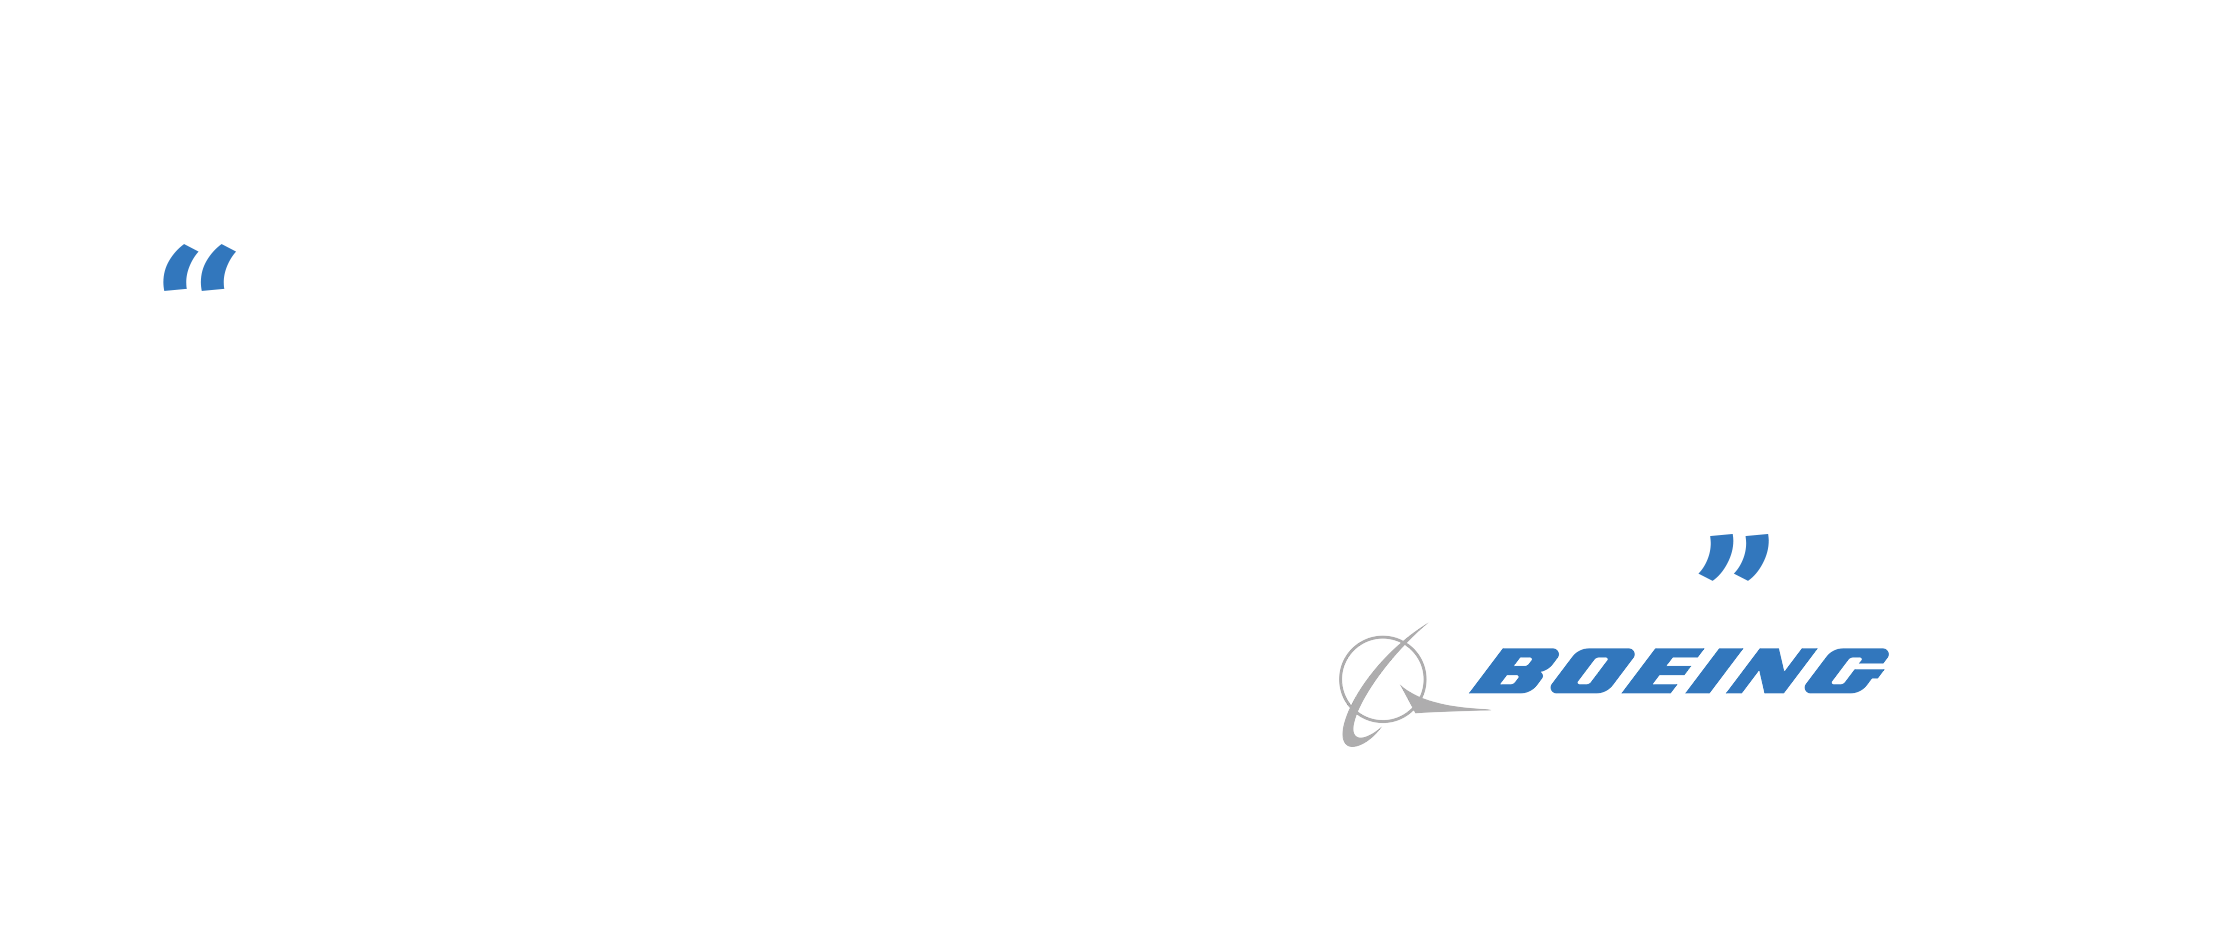 BoeingQuote.png